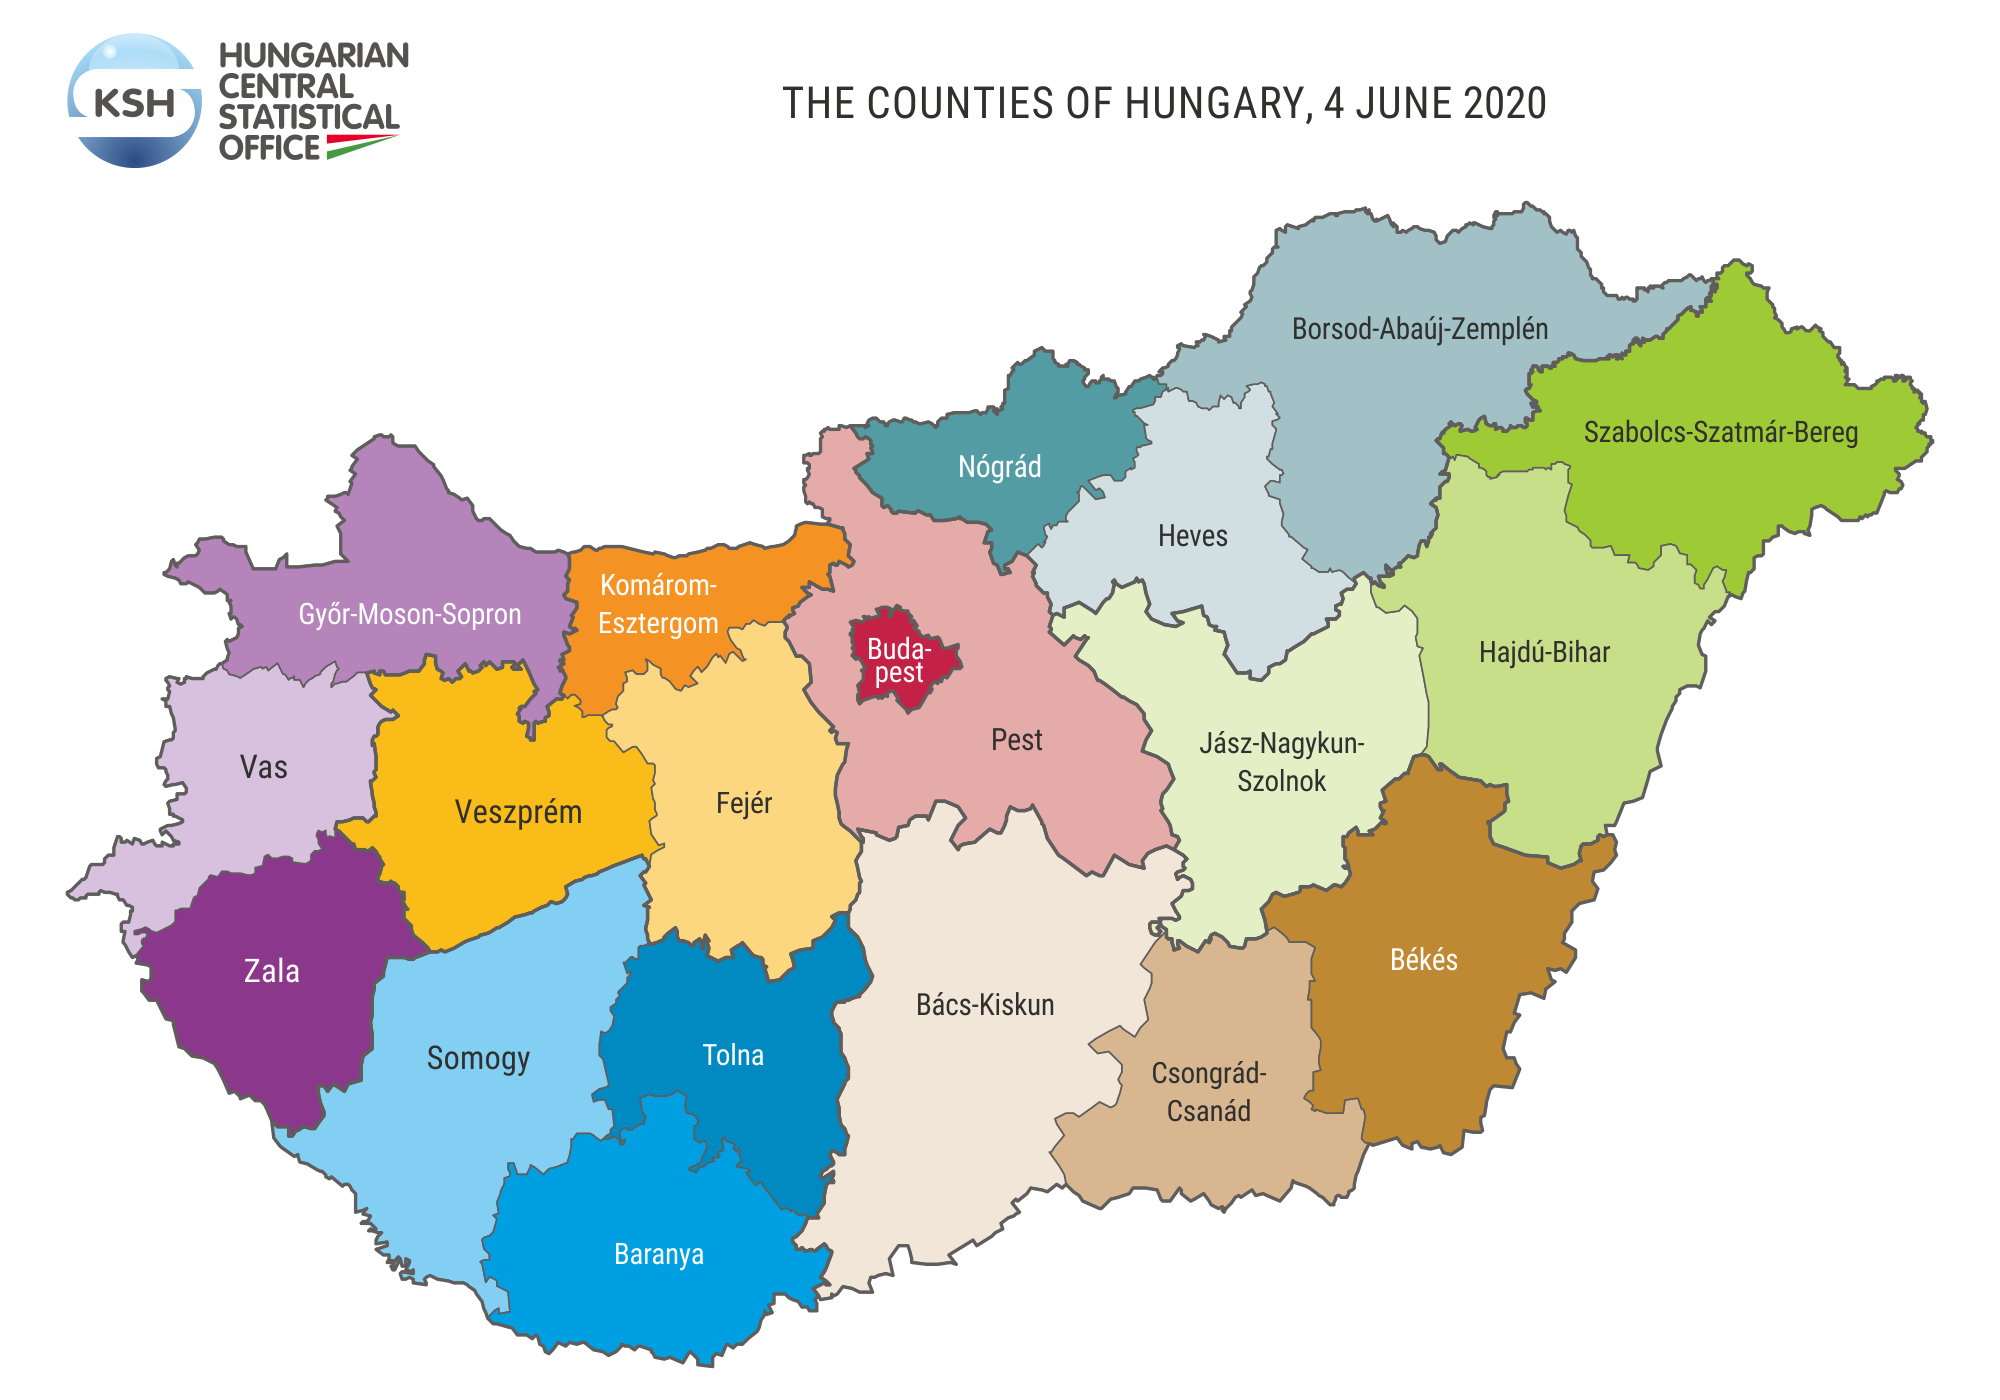 Public administration structure of Hungary